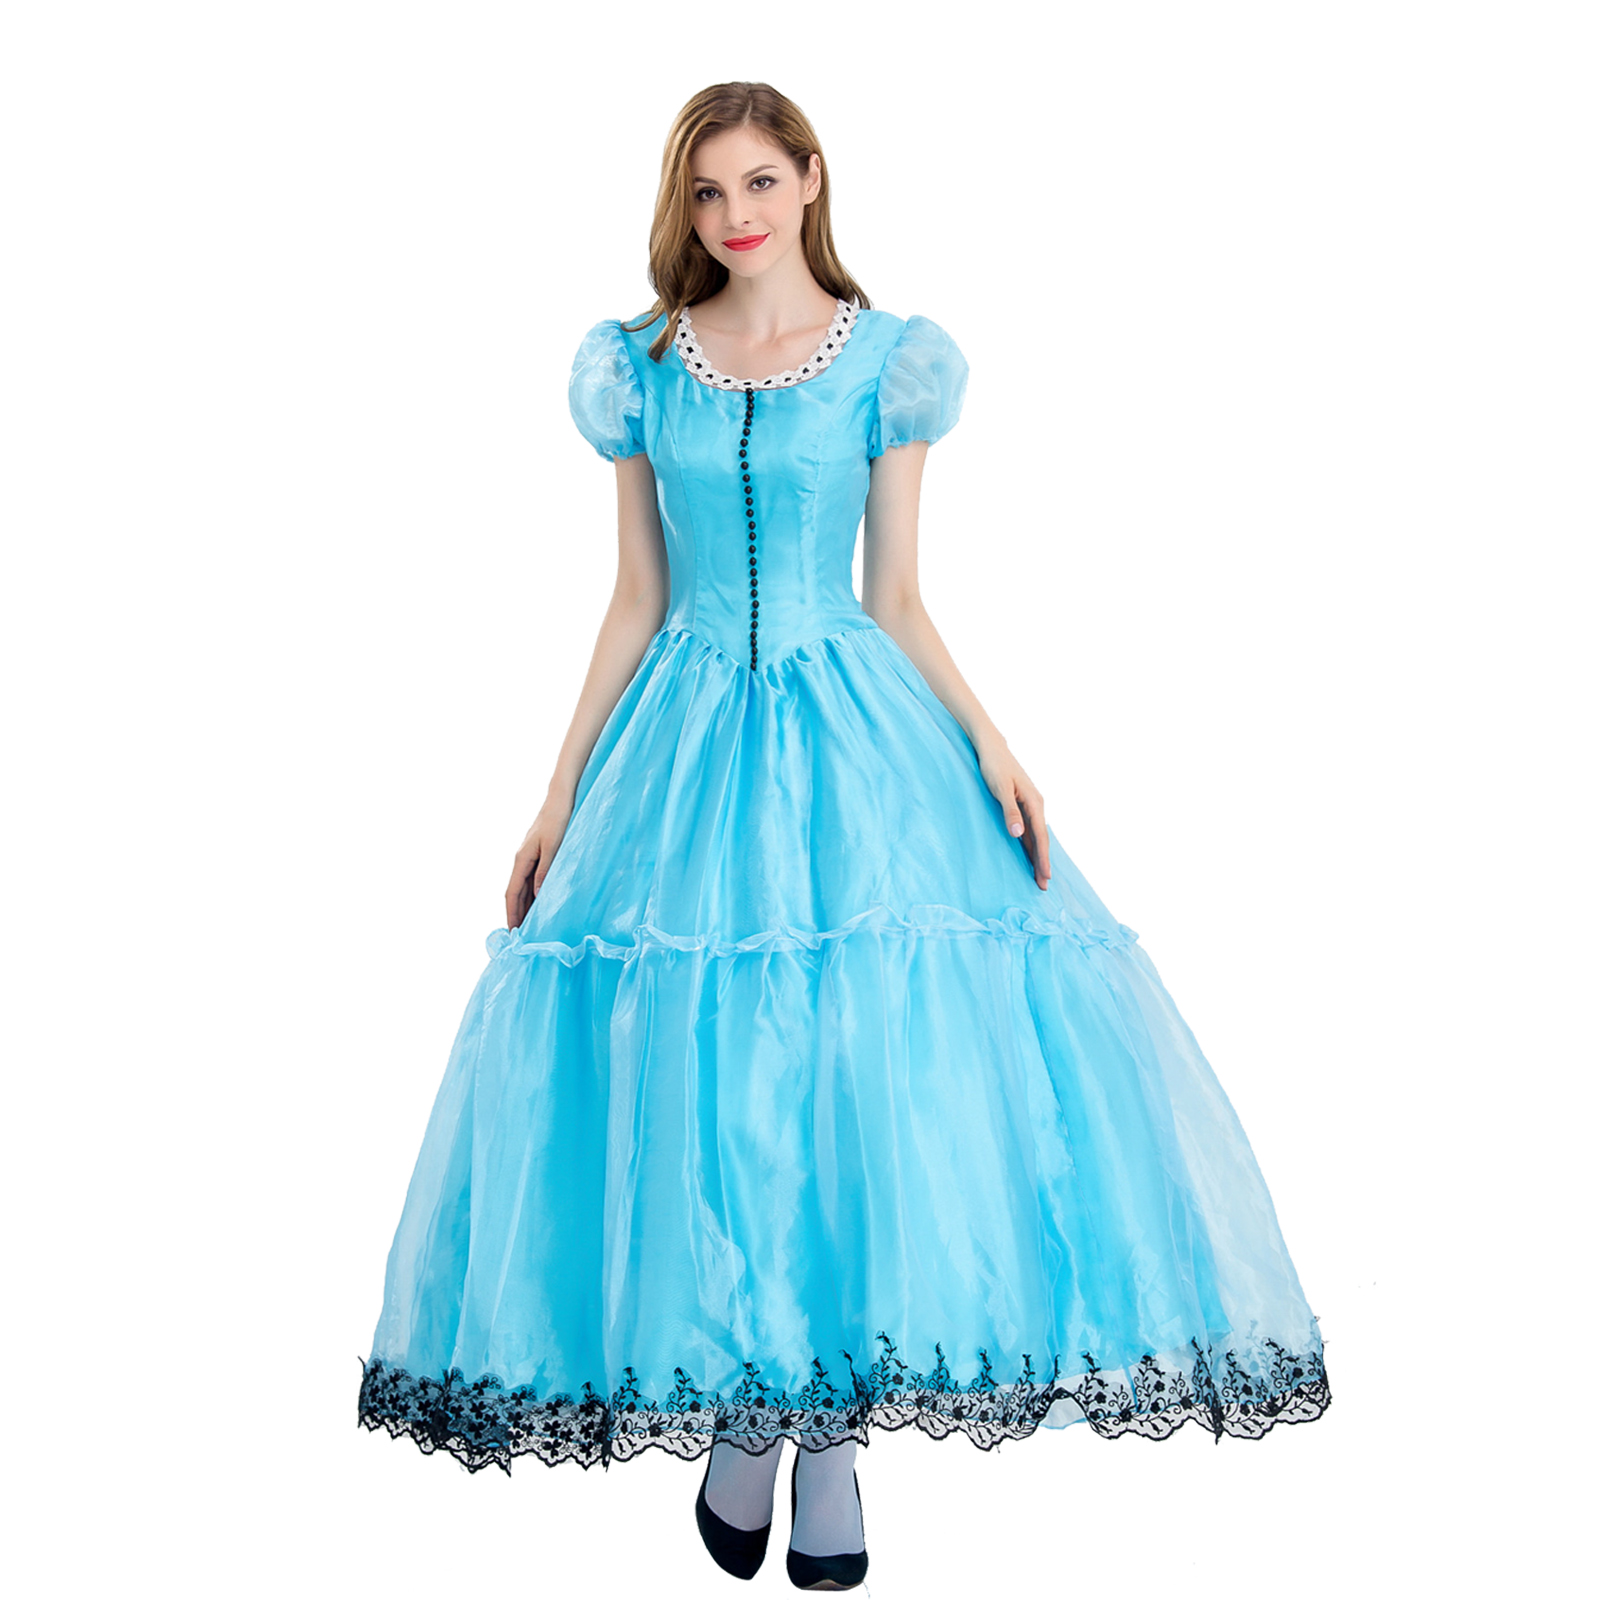 2017 Halloween Cosplay blue Custume for women Party Dress Princess Queen Fancy Pretty Dresses